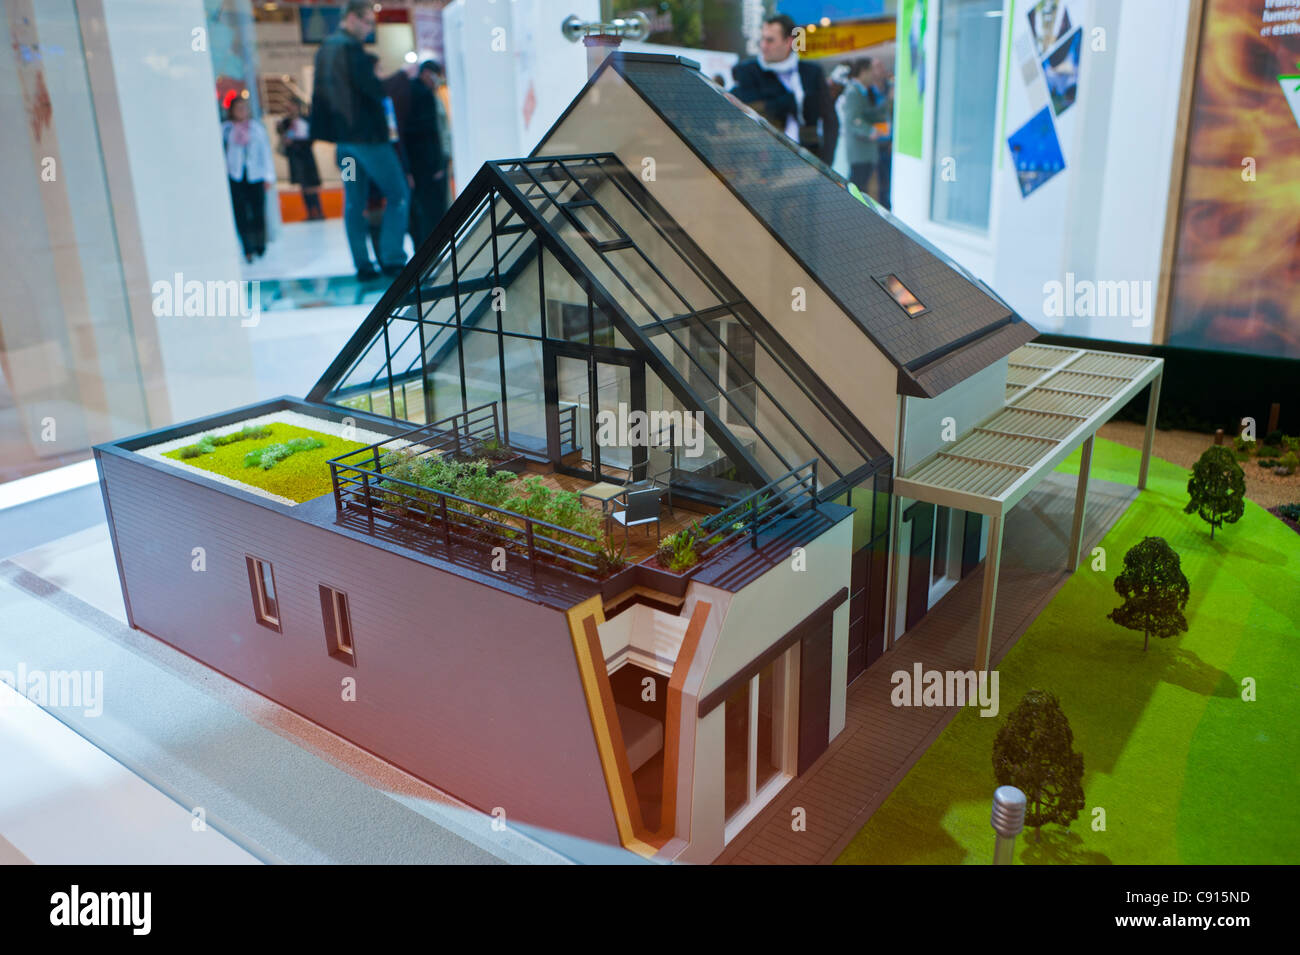 Paris france batimat construction materials trade show for Model house building materials